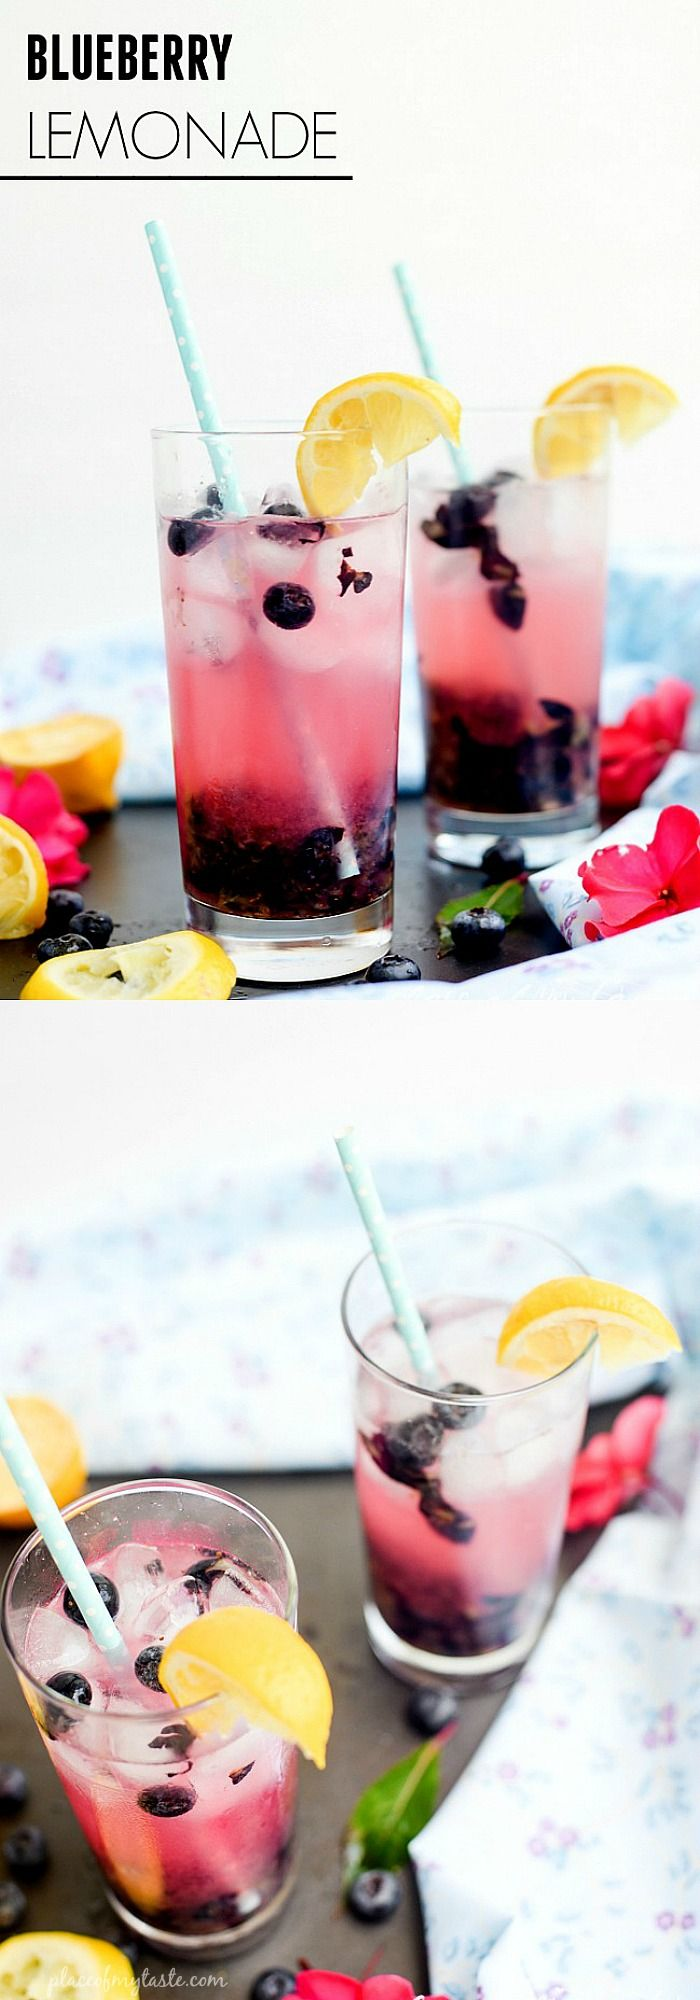 Best Recipes - Blueberry Lemonade Recipe by placeofmytaste.com